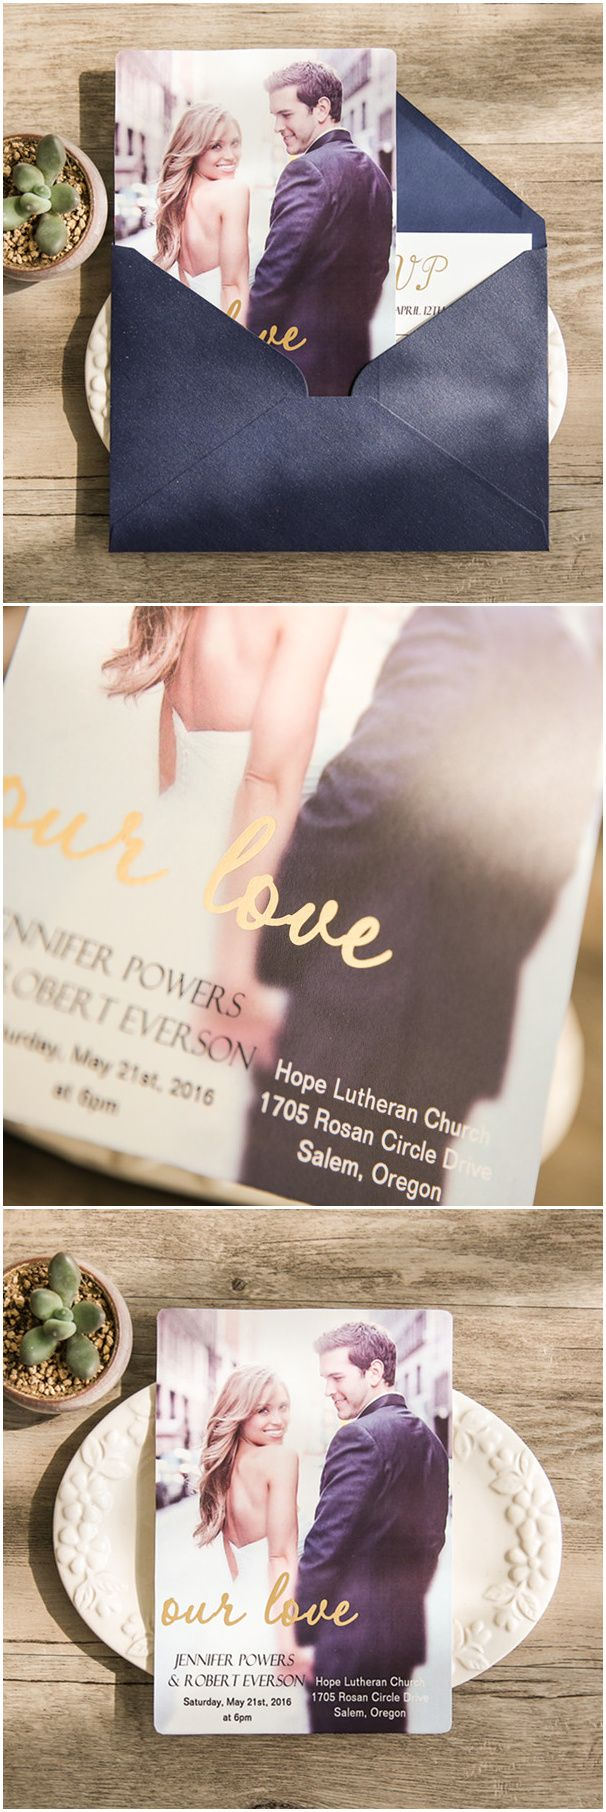 romantic photo themed wedding invitations with free rsvp cards